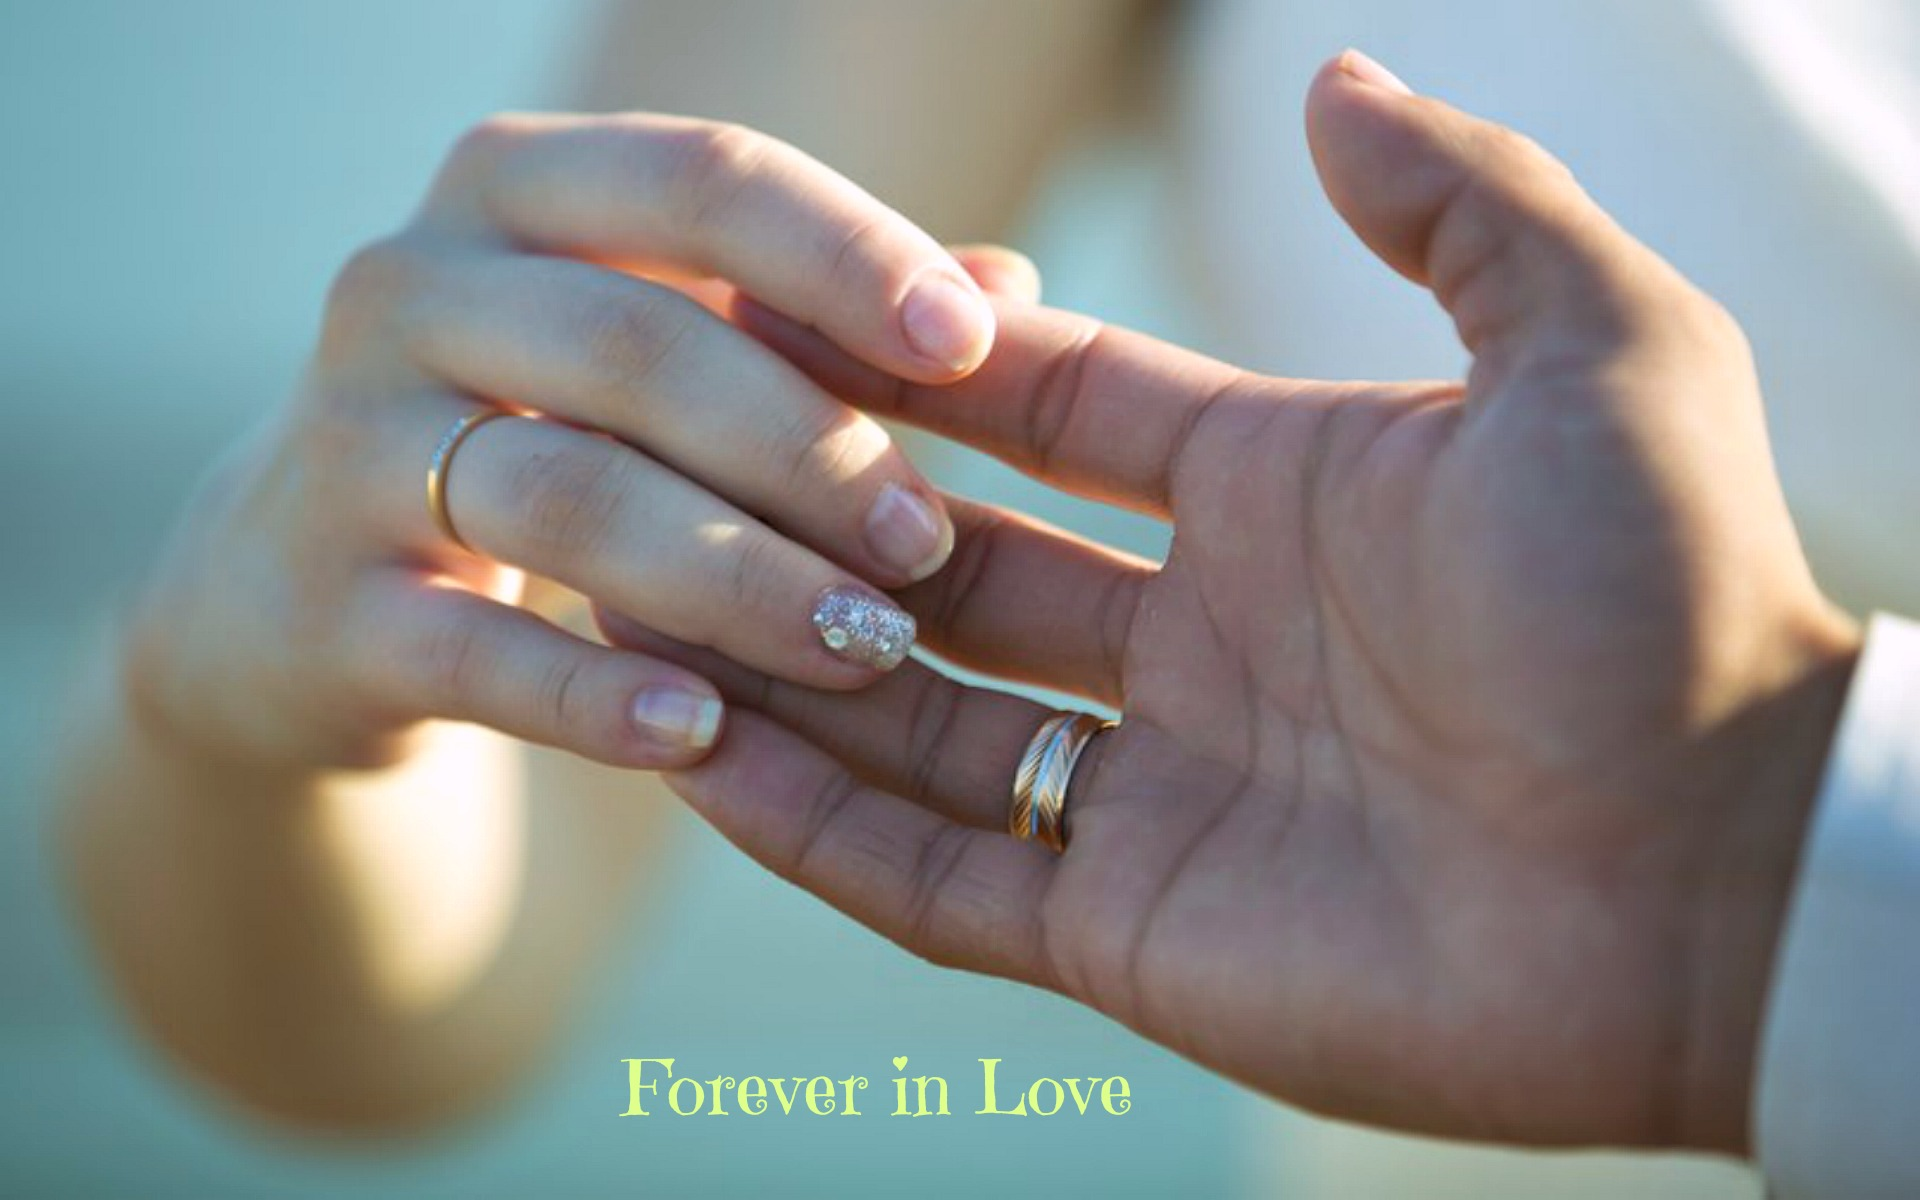 Cute Together Forever Wallpaper Forever In Love Rings Wedding Hands Hd Wallpaper 15